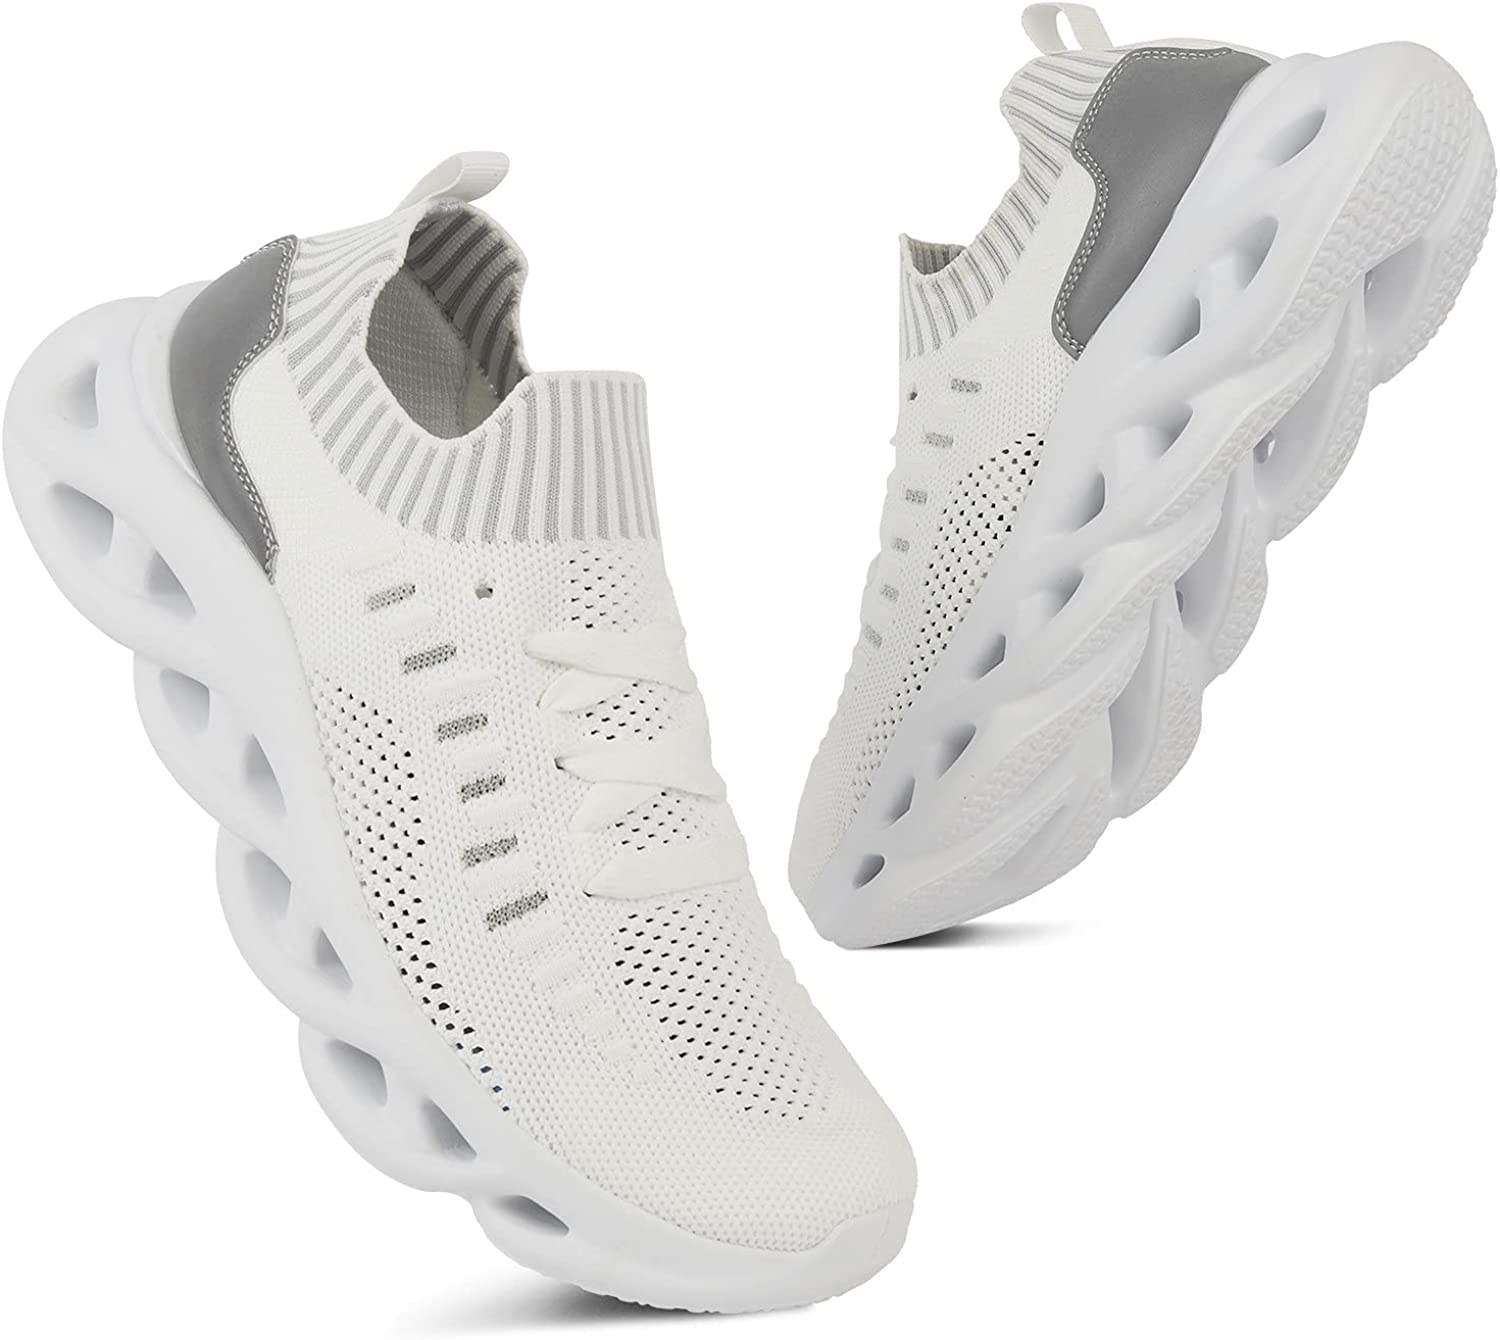 Inber Mens Max 78% OFF Walking Running Shoes Sale Special Price Shoe on Tennis Breathable Slip